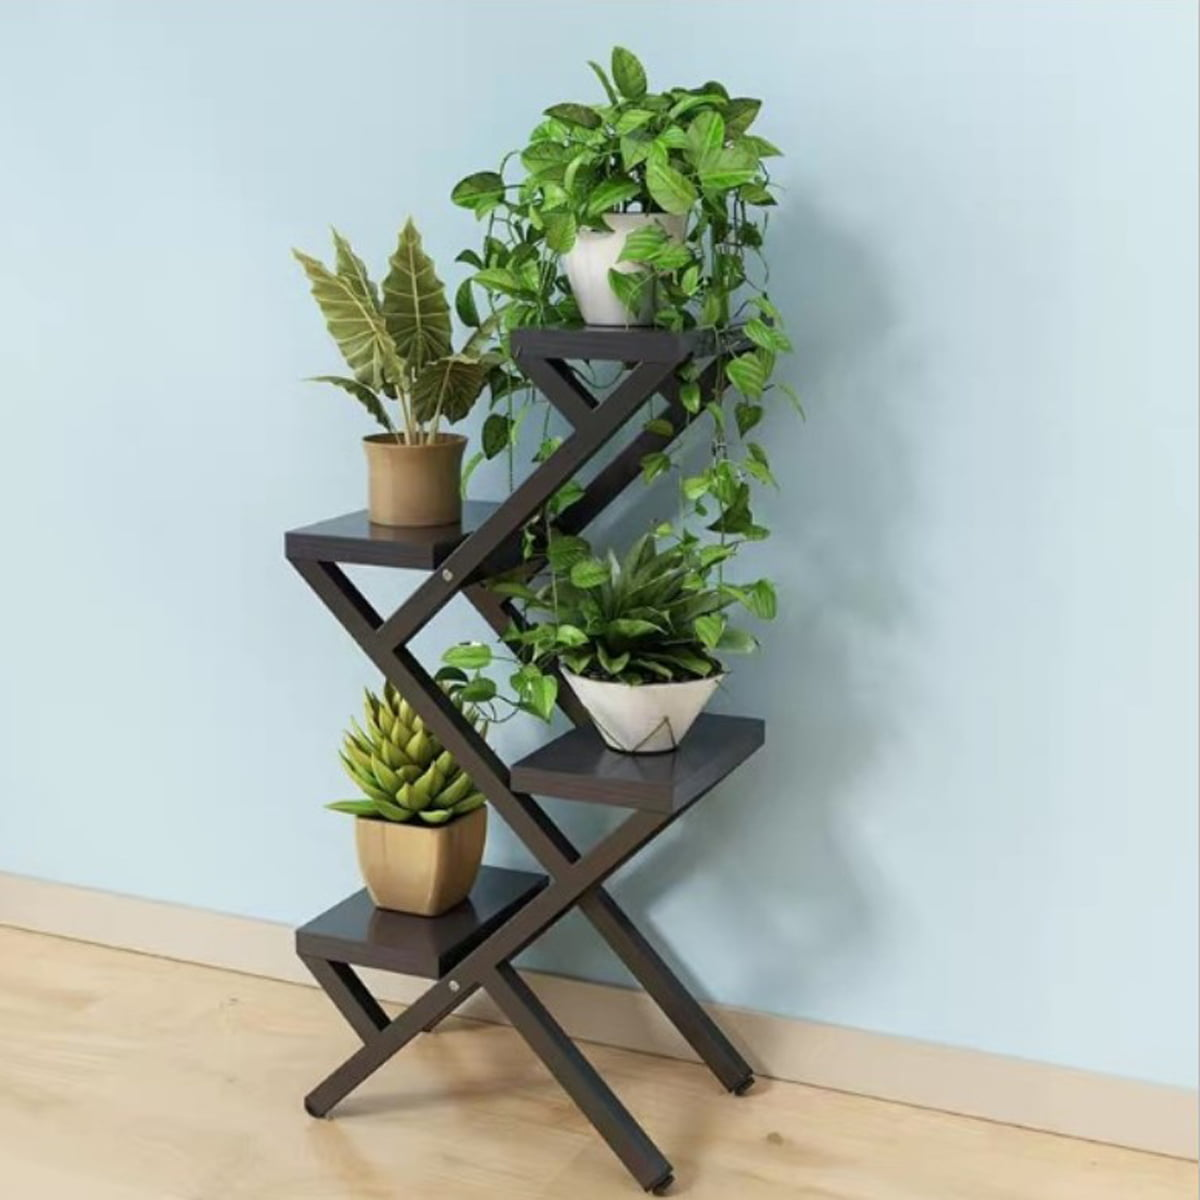 4 5 Tier Plant Stand Indoor Outdoor Metal Plant Display Flower Shelves Stands Garden Plant Shelf Rack Holder Organizer For Corner Living Room Balcony Patio Yard Walmart Com Walmart Com